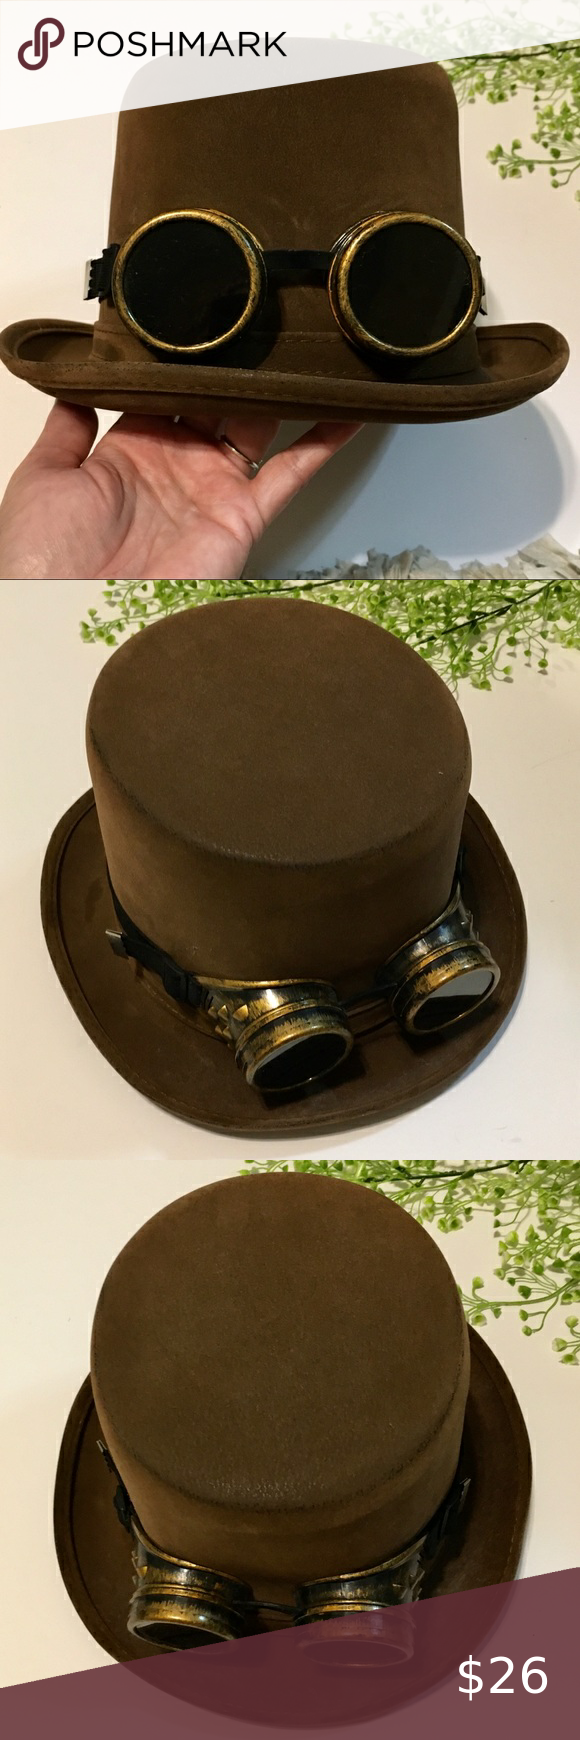 Steampunk Top Hat With Goggles Steampunk Top Hat Top Hat Steampunk Goggles